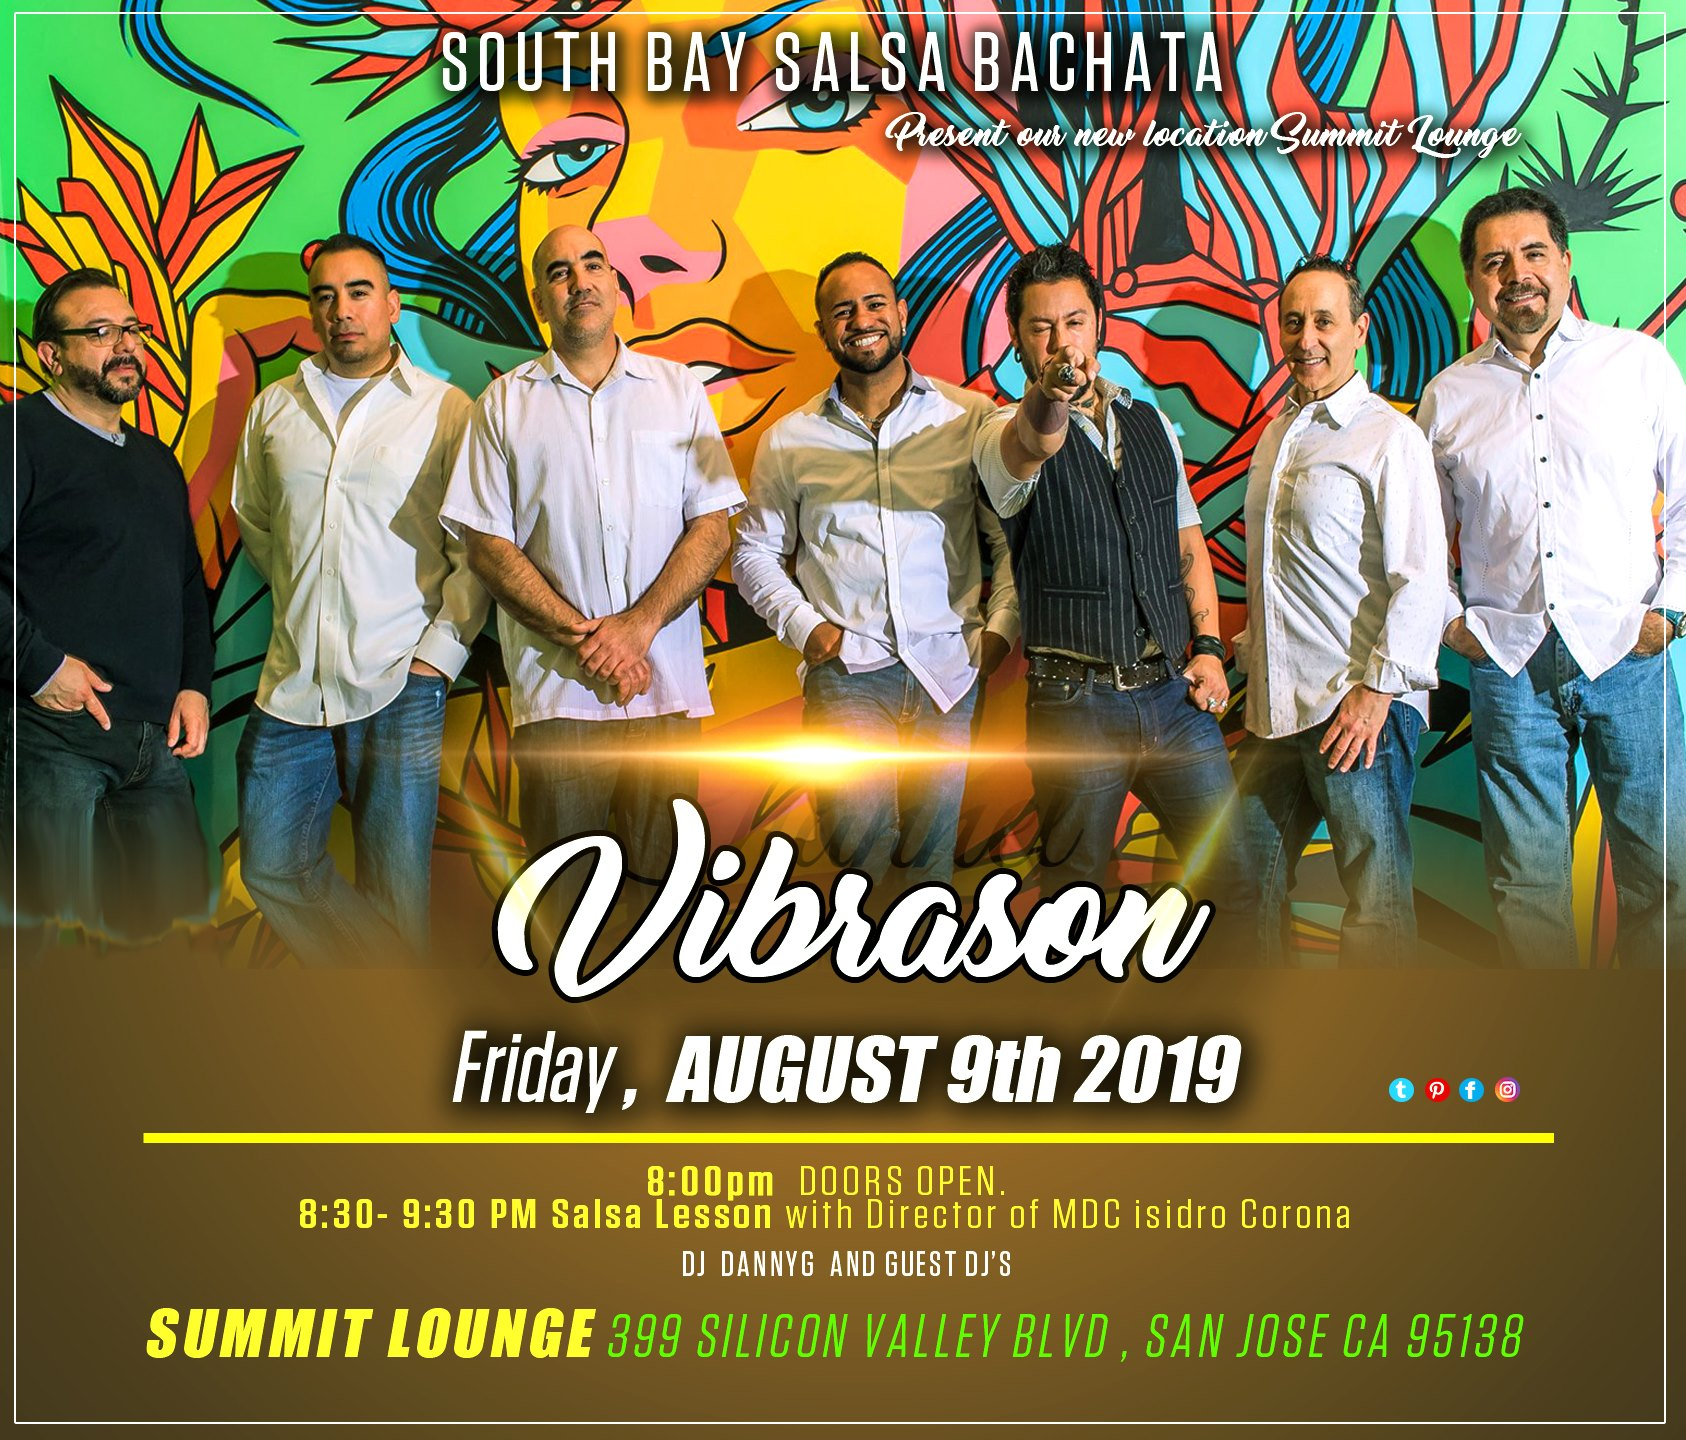 Join VibraSON LIVE at Summit Lounge in San Jose on AUG 9 (S Jose Jazz SummerFest after party ;) Dance lesson 8:30pm, DJ DannyG 9:30pm, VibraSON 10:30pm